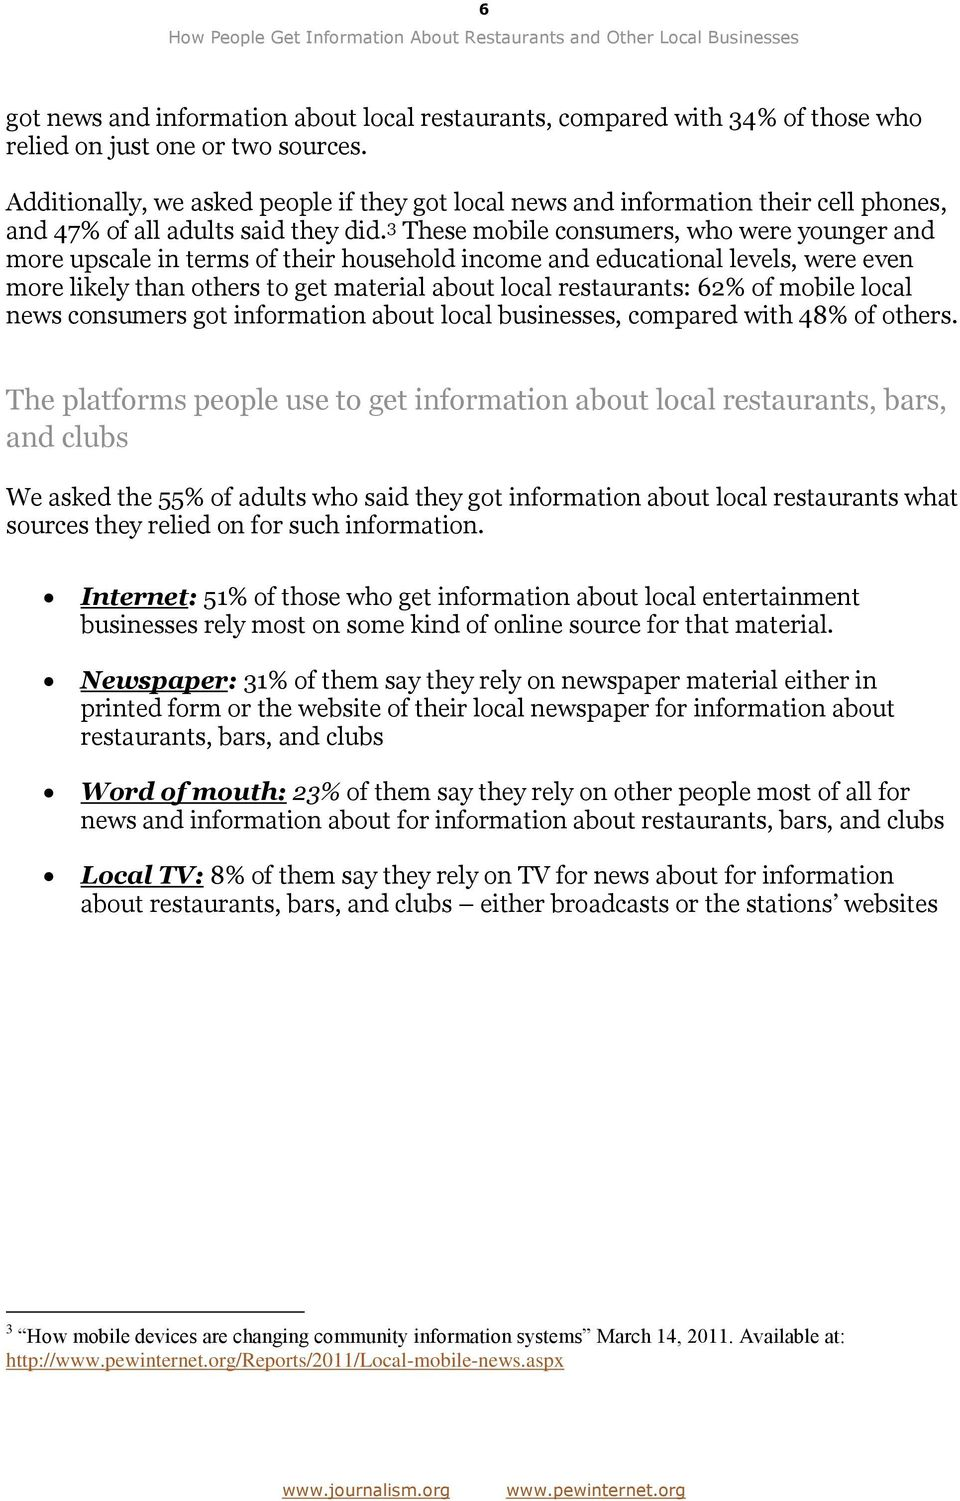 3 These mobile consumers, who were younger and more upscale in terms of their household income and educational levels, were even more likely than others to get material about local restaurants: 62%